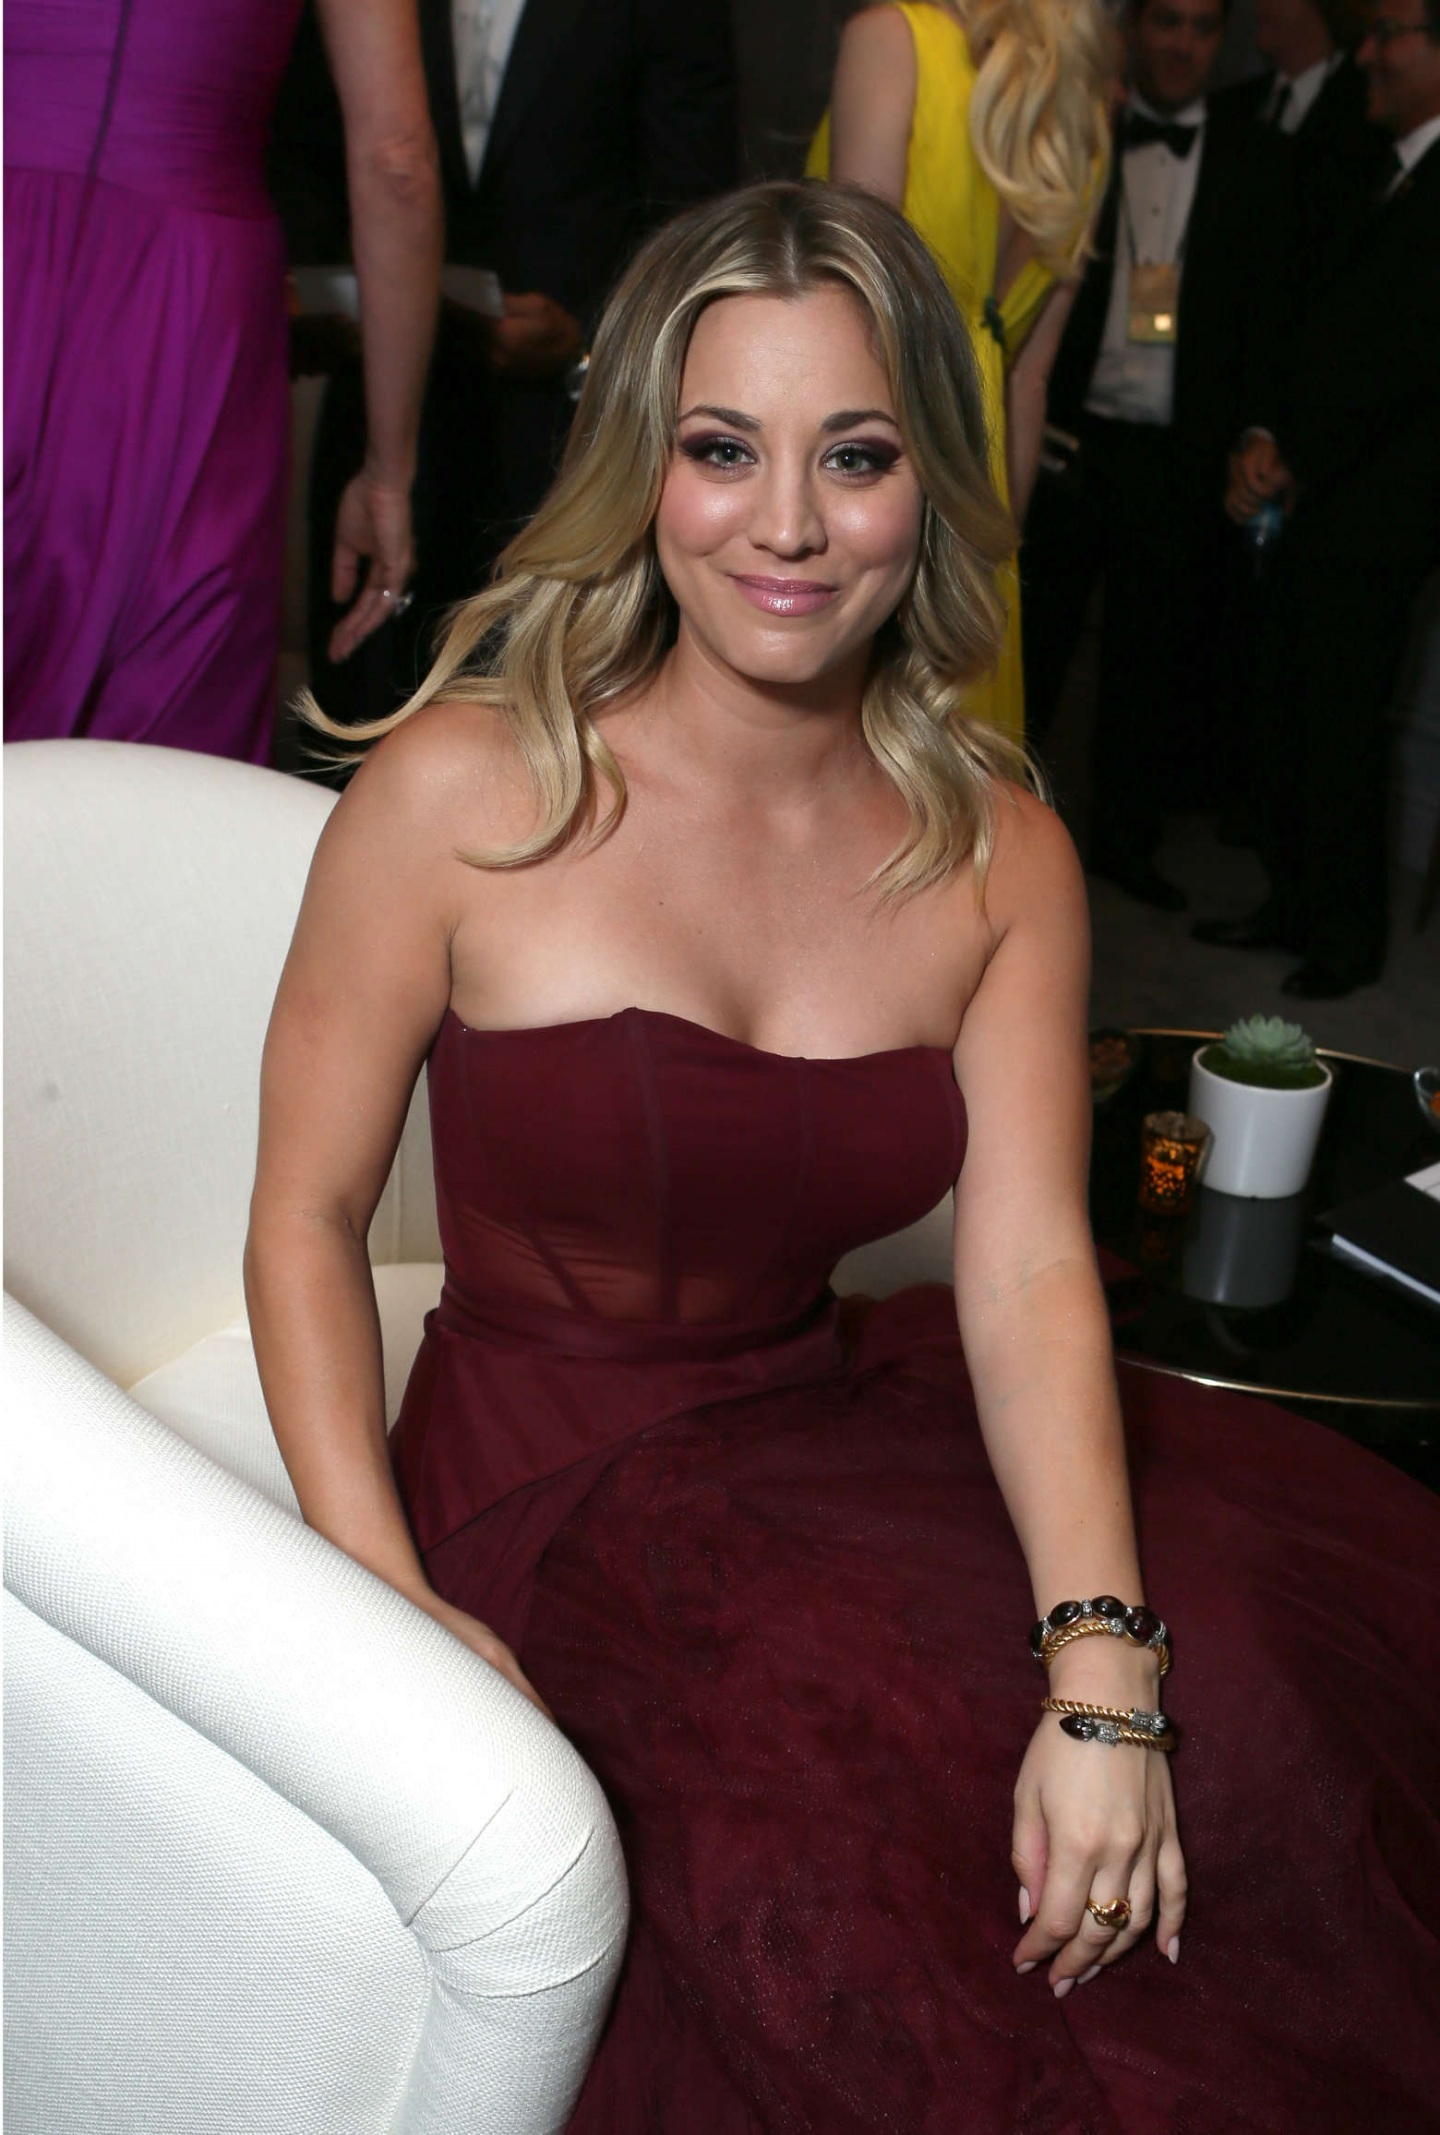 Kaley Cuoco - Gallery  Ebaums World-1680